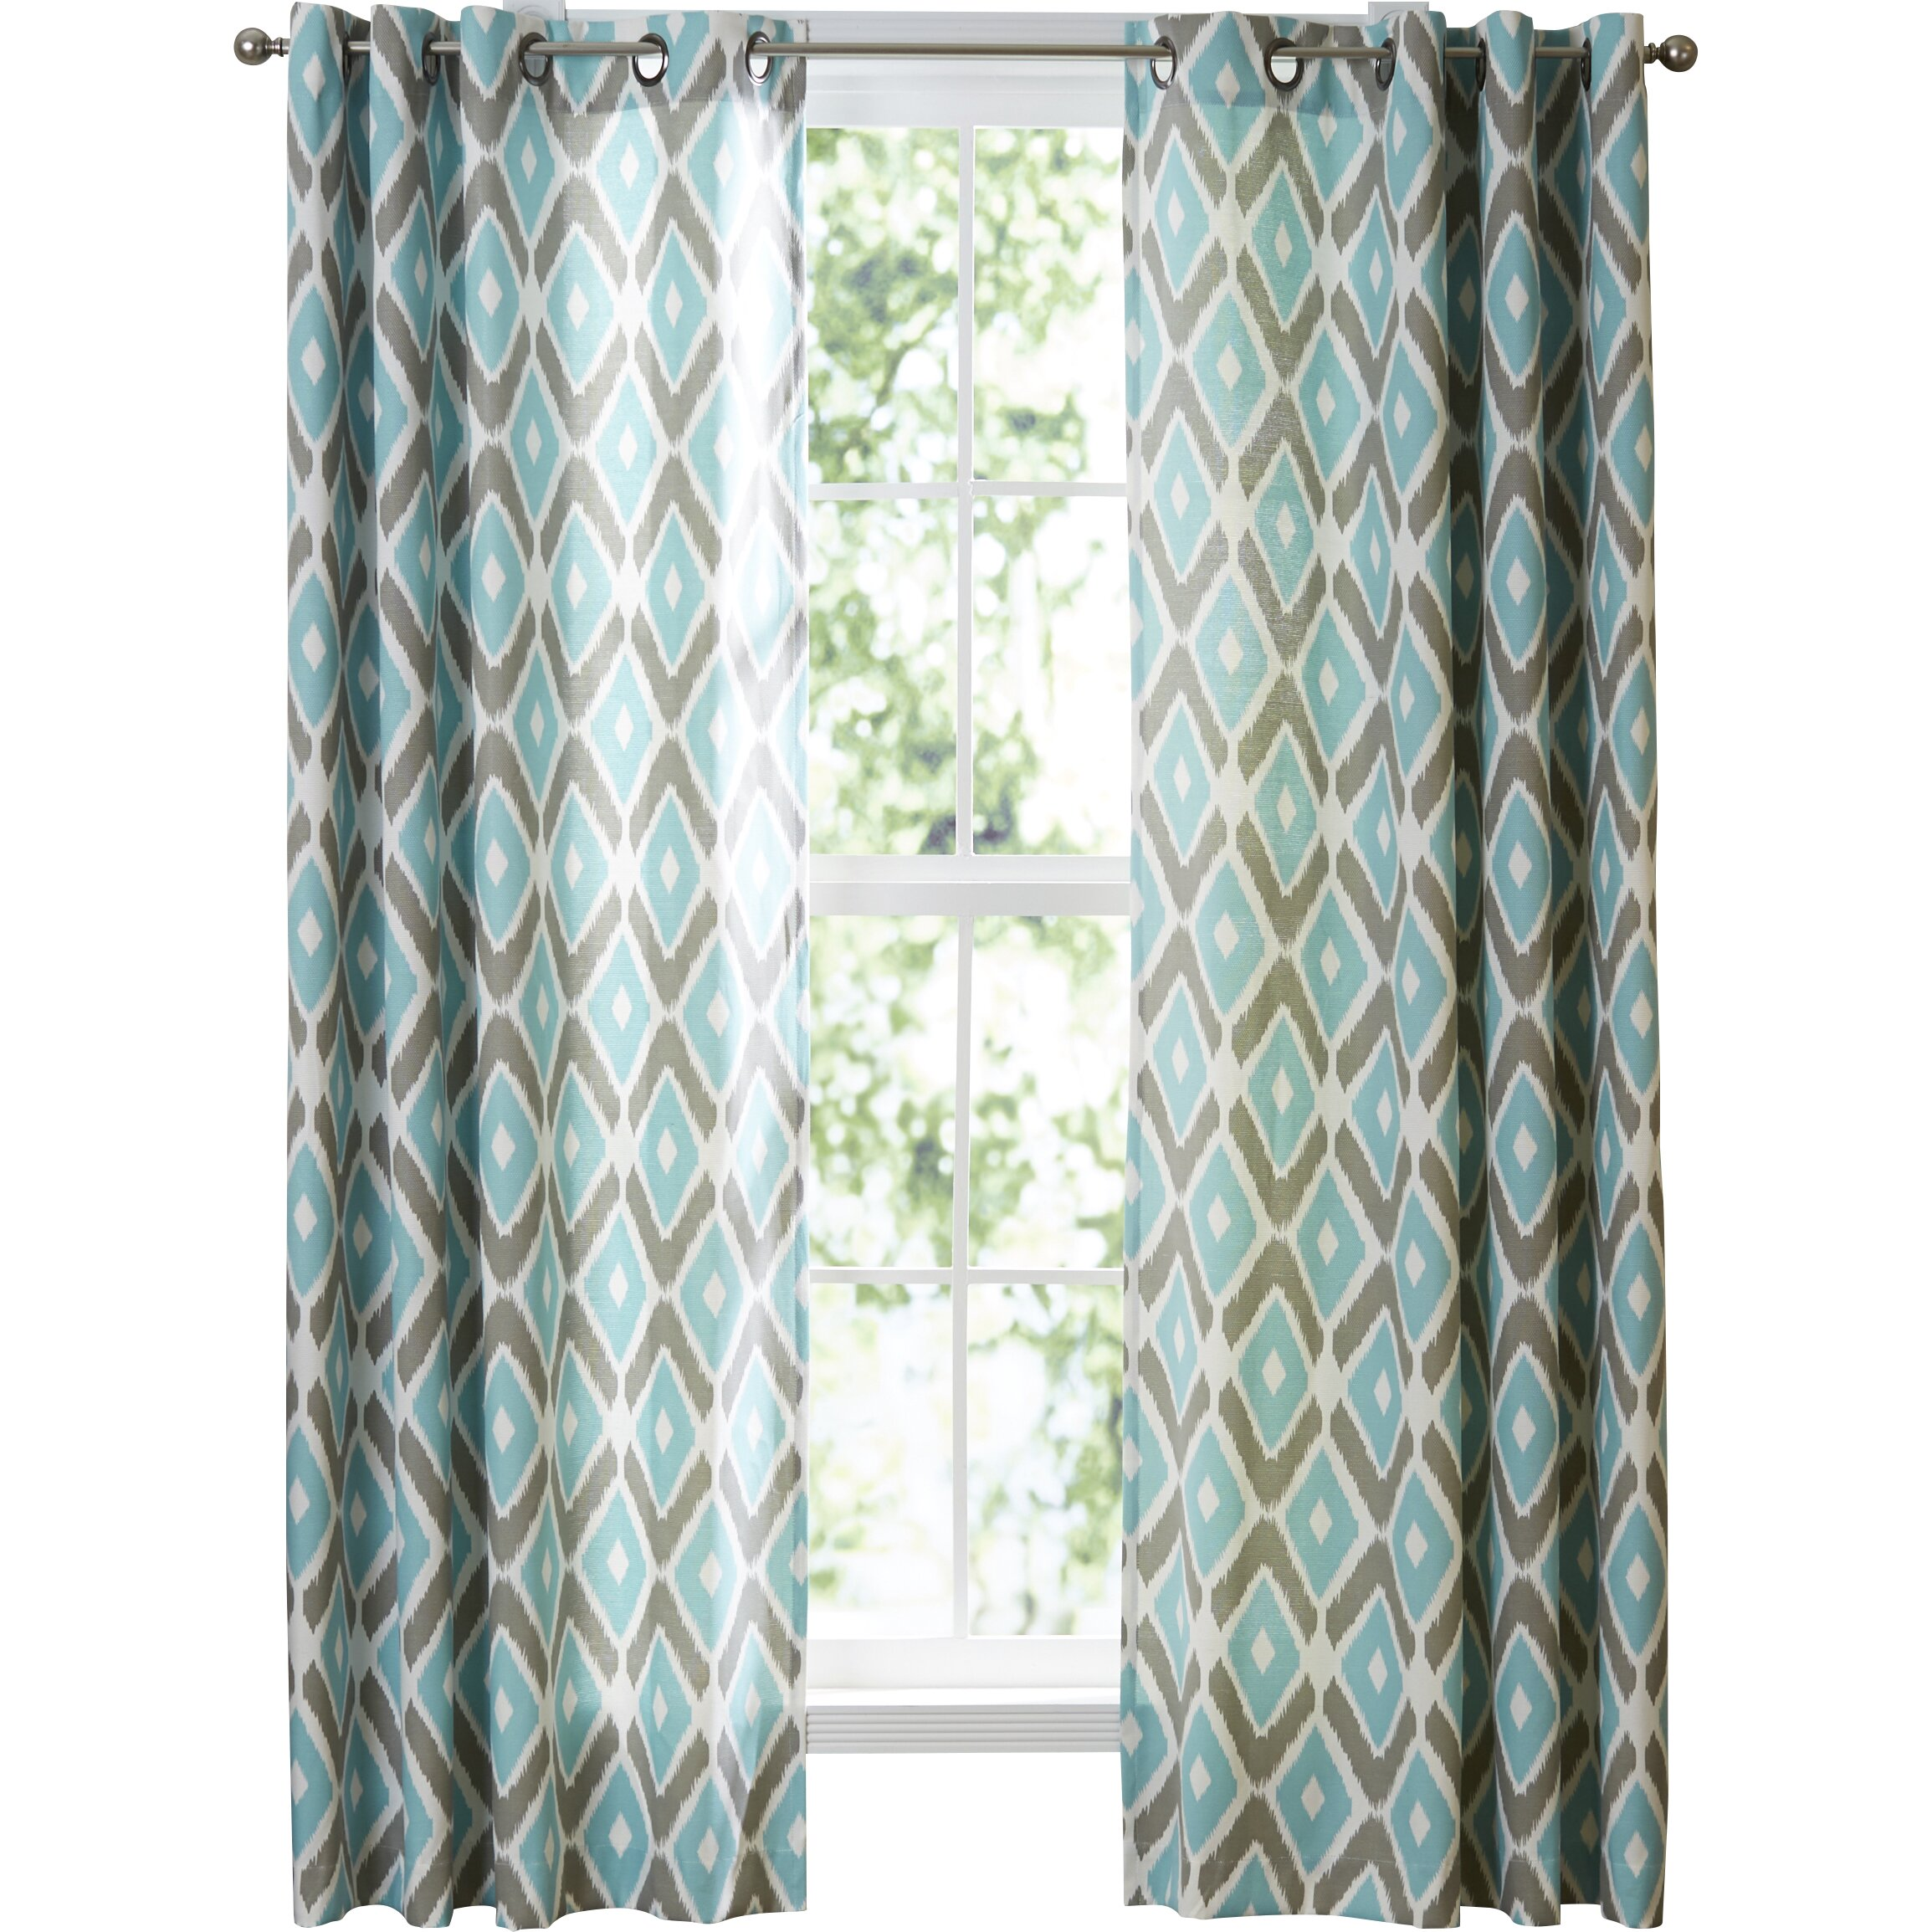 Ikat curtain panels - Blue And White Ikat Curtains Quick View